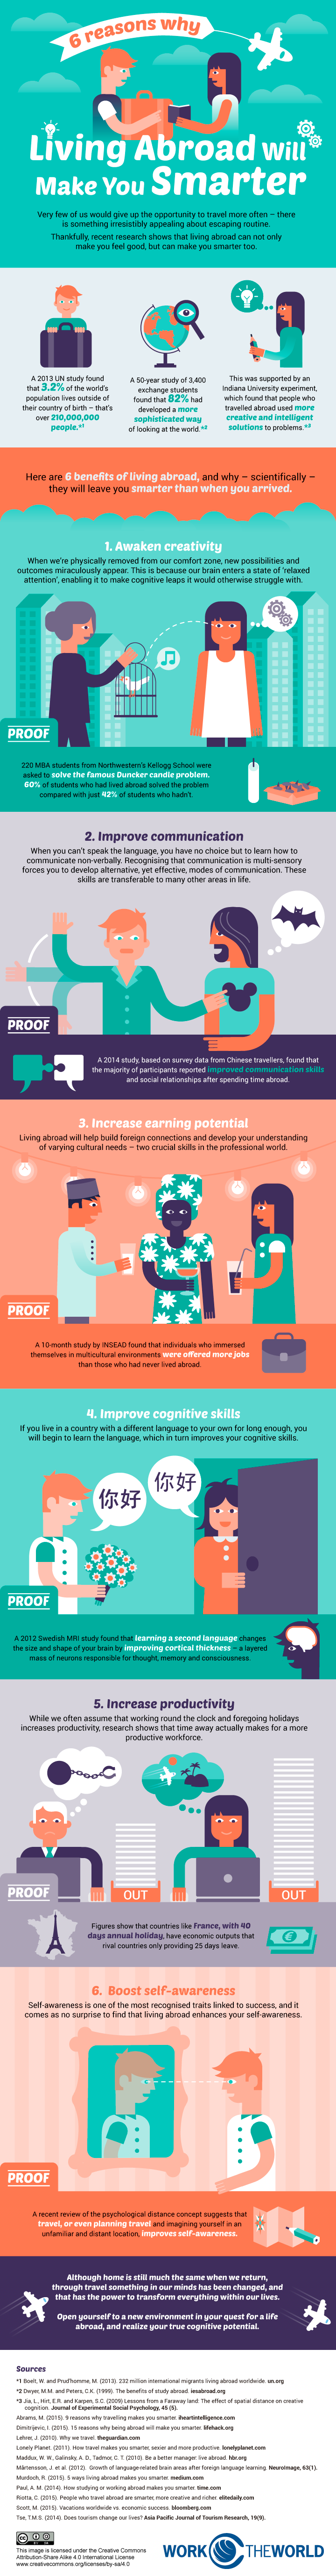 Six reasons why living abroud make you smarter #Infographic